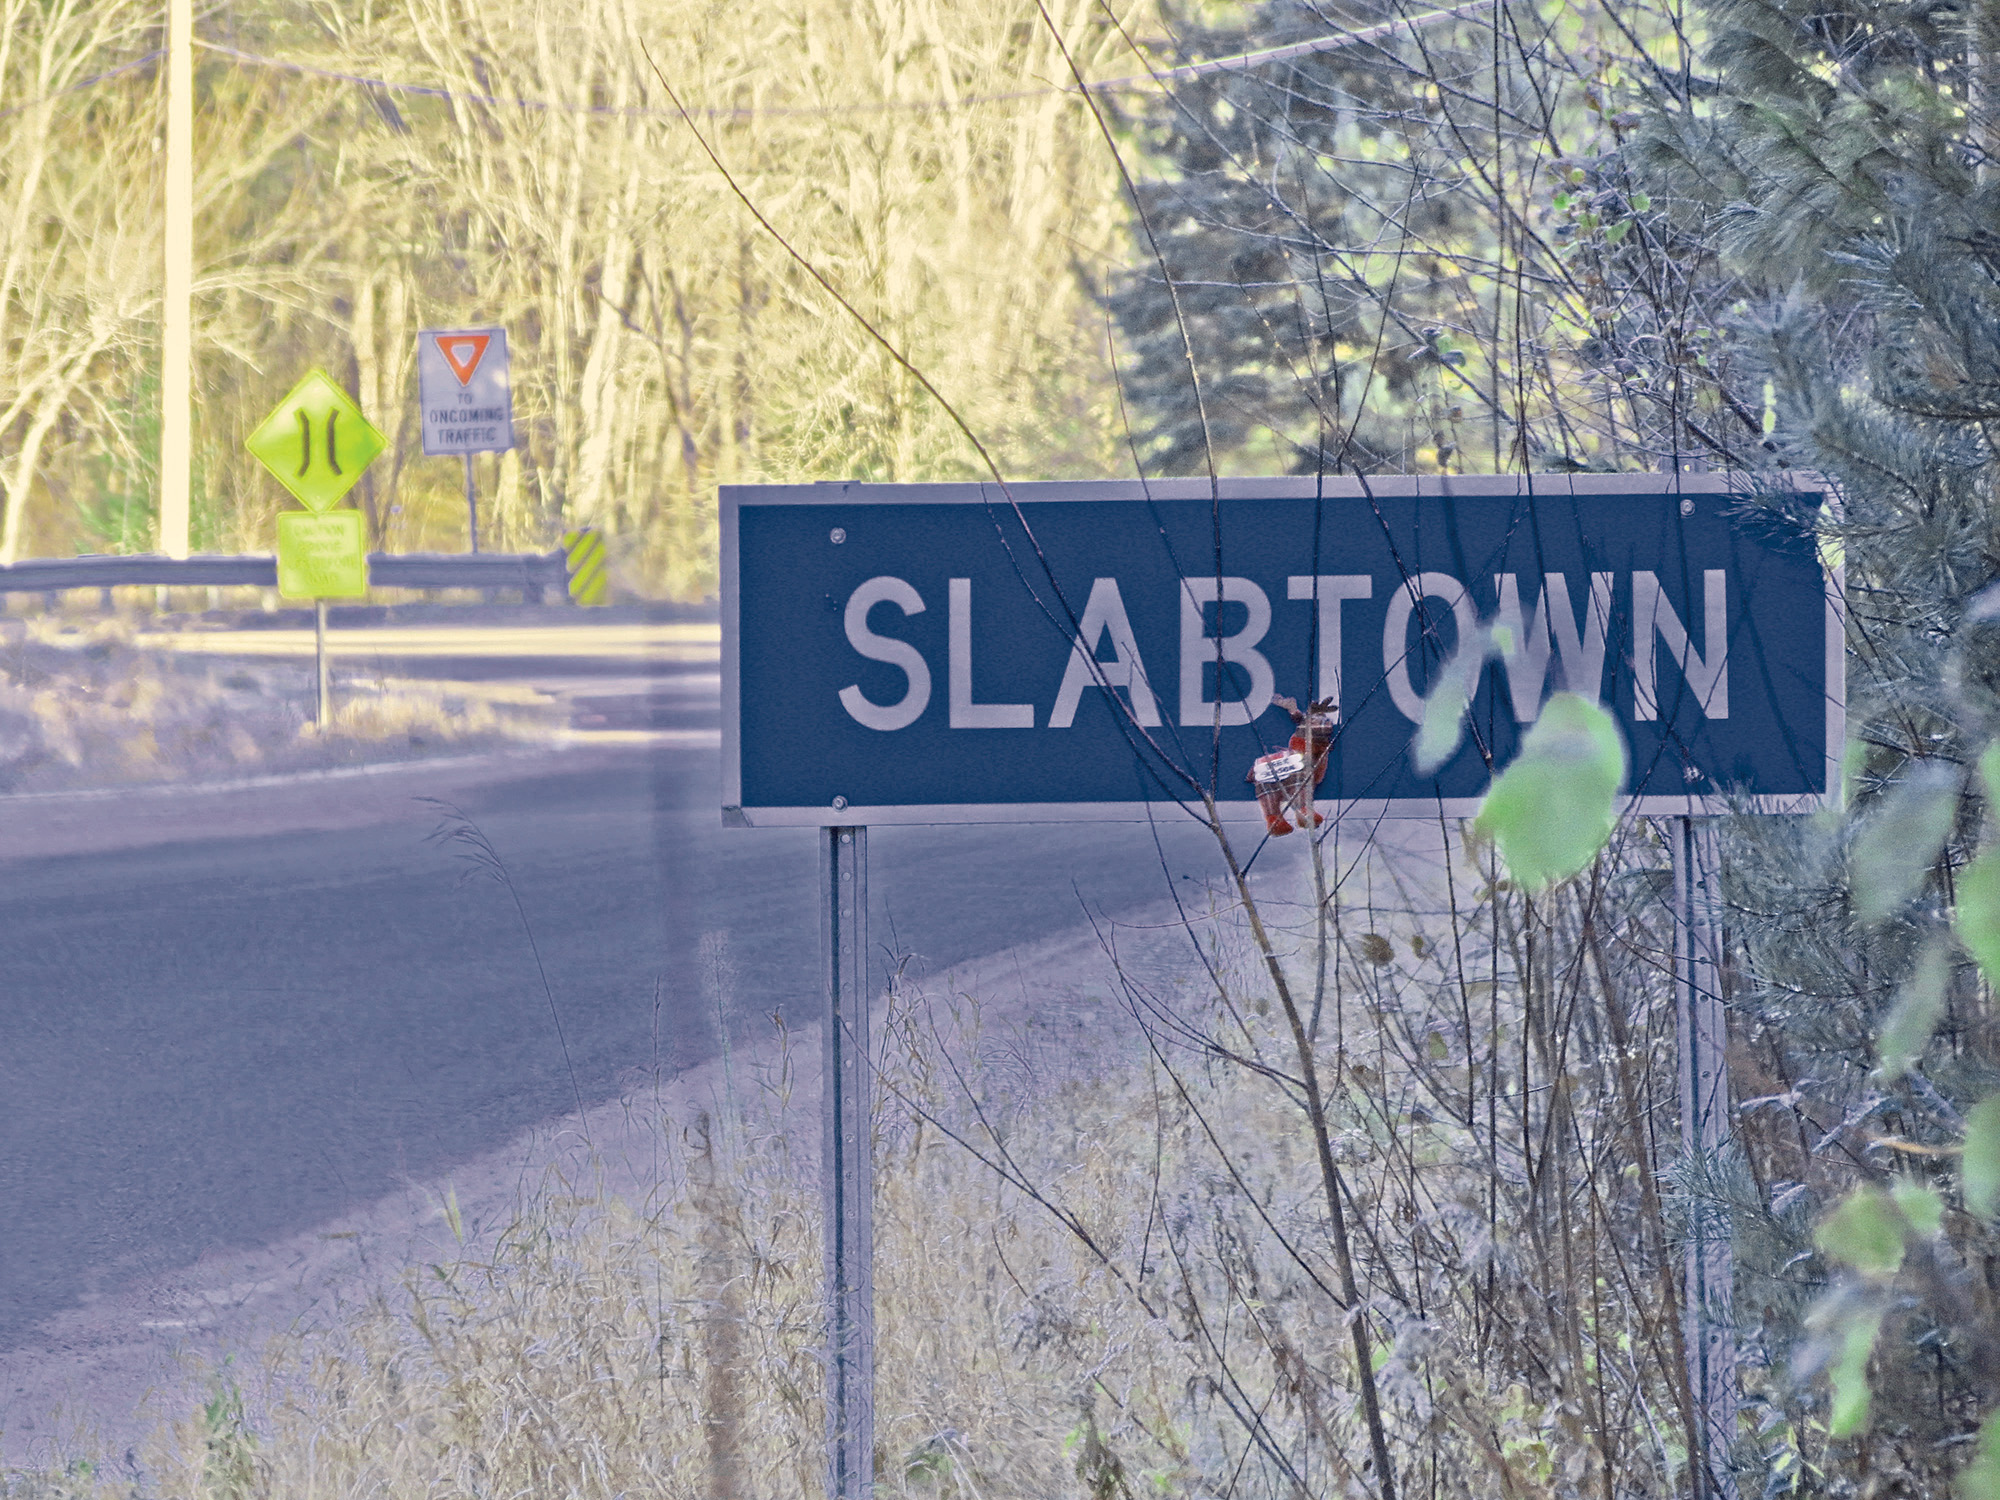 Slabtown was once a thriving logging town but today it is a hamlet with a single-lane iron bridge and a handful of houses nestled into the valley below Boulter.